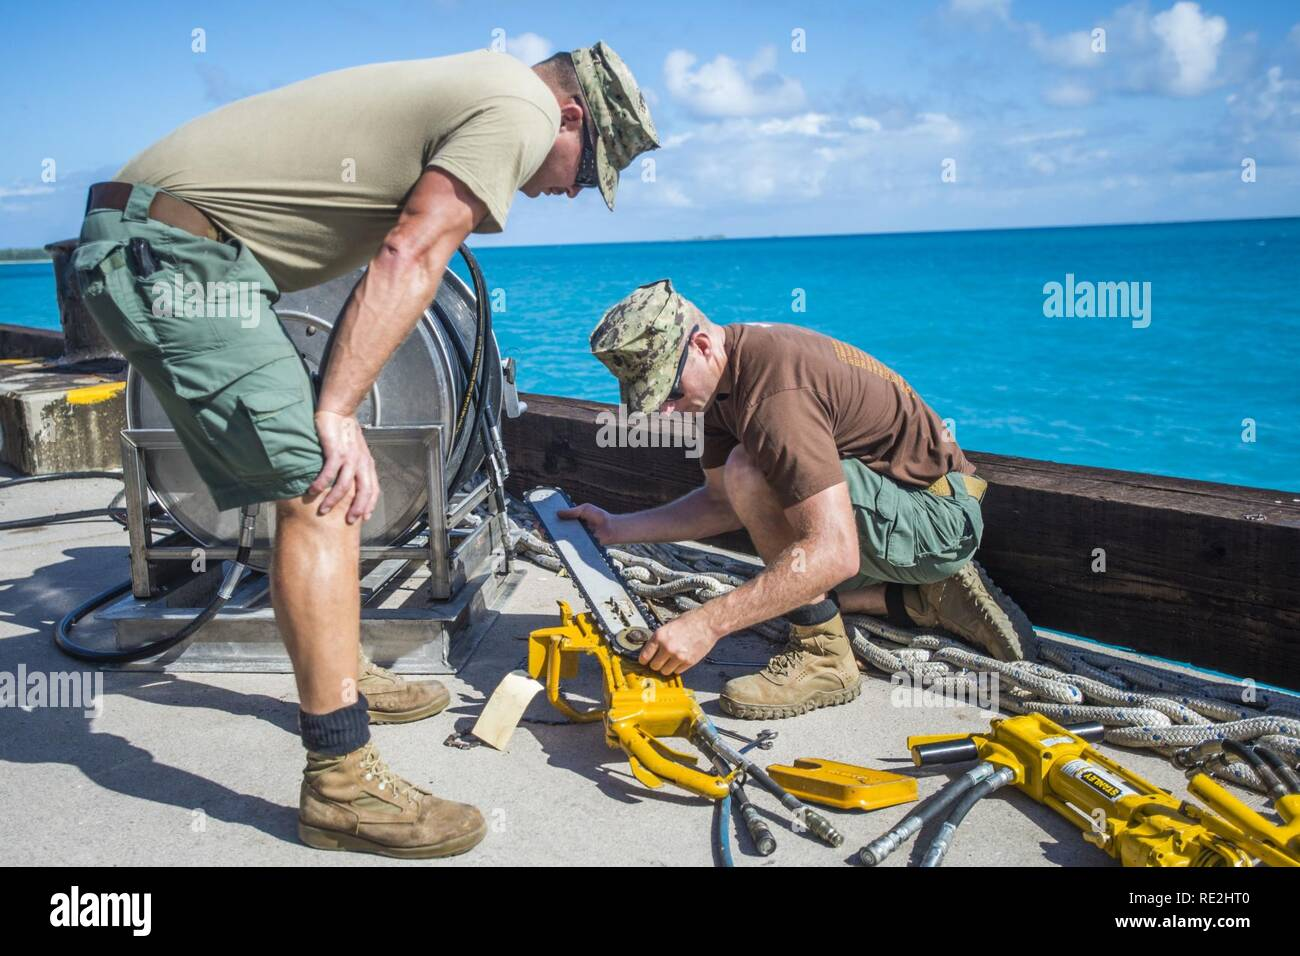 Chief Petty Officer Jesse Hamblin, right, and Petty Officer 1st Class Christopher Chilton, both assigned to Underwater Construction Team (UCT) 2's Construction Dive Detachment Bravo (CDDB), replace the chain on a hydraulic chainsaw in Diego Garcia, British Indian Ocean Territory,  Nov. 8, 2016.  CDDB is performing precision underwater demolition and light salvage to remove obstructions from Diego Garcia's deep draft wharf. CDDB is on the third stop of their deployment, where they are conducting inspection, maintenance, and repair of various underwater and waterfront facilities while under Comm Stock Photo